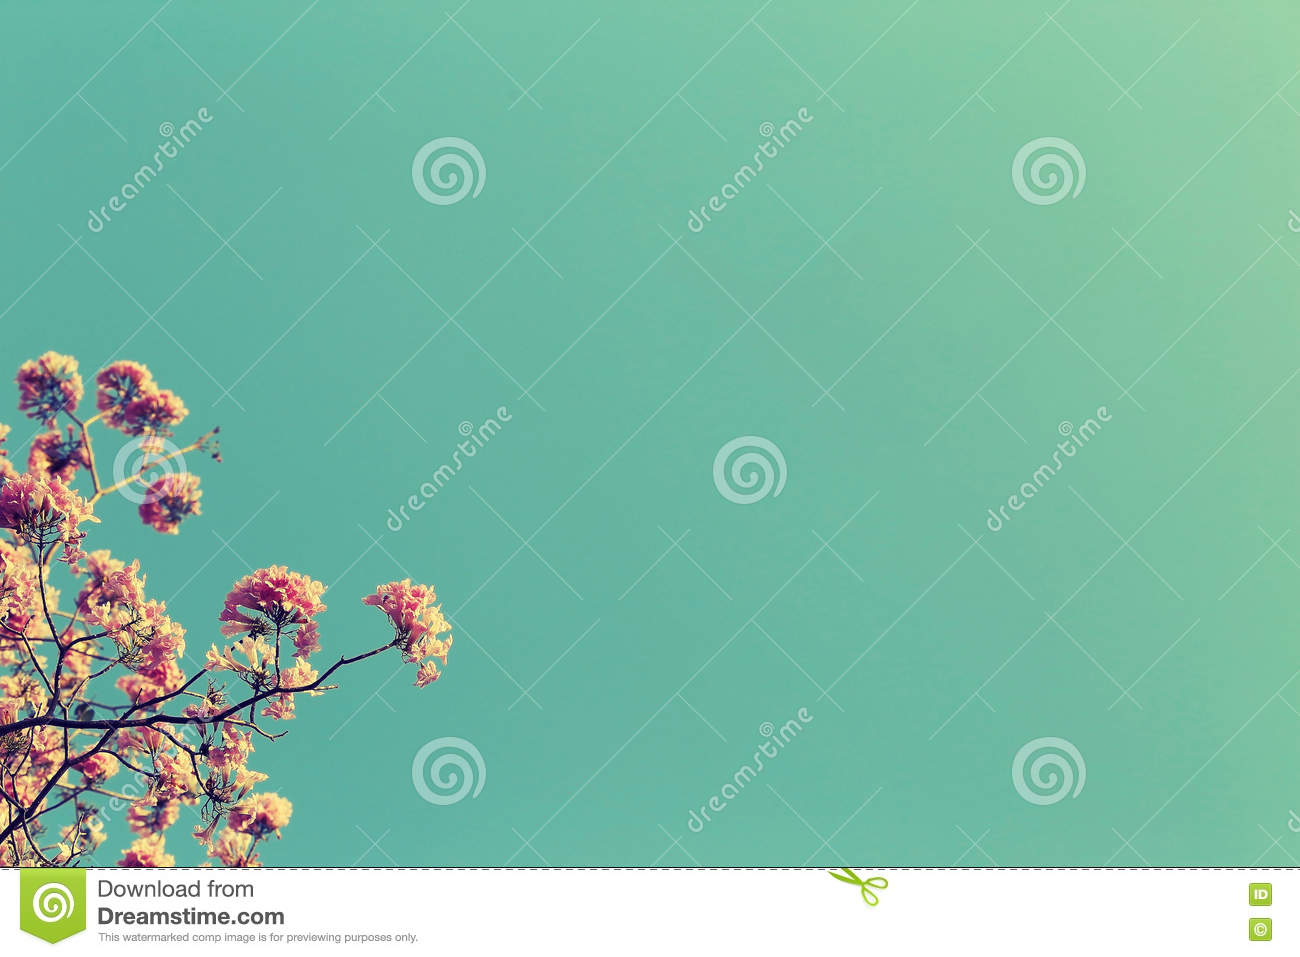 Leafless tree branch with pink flowers against blue sky background, vintage toned image